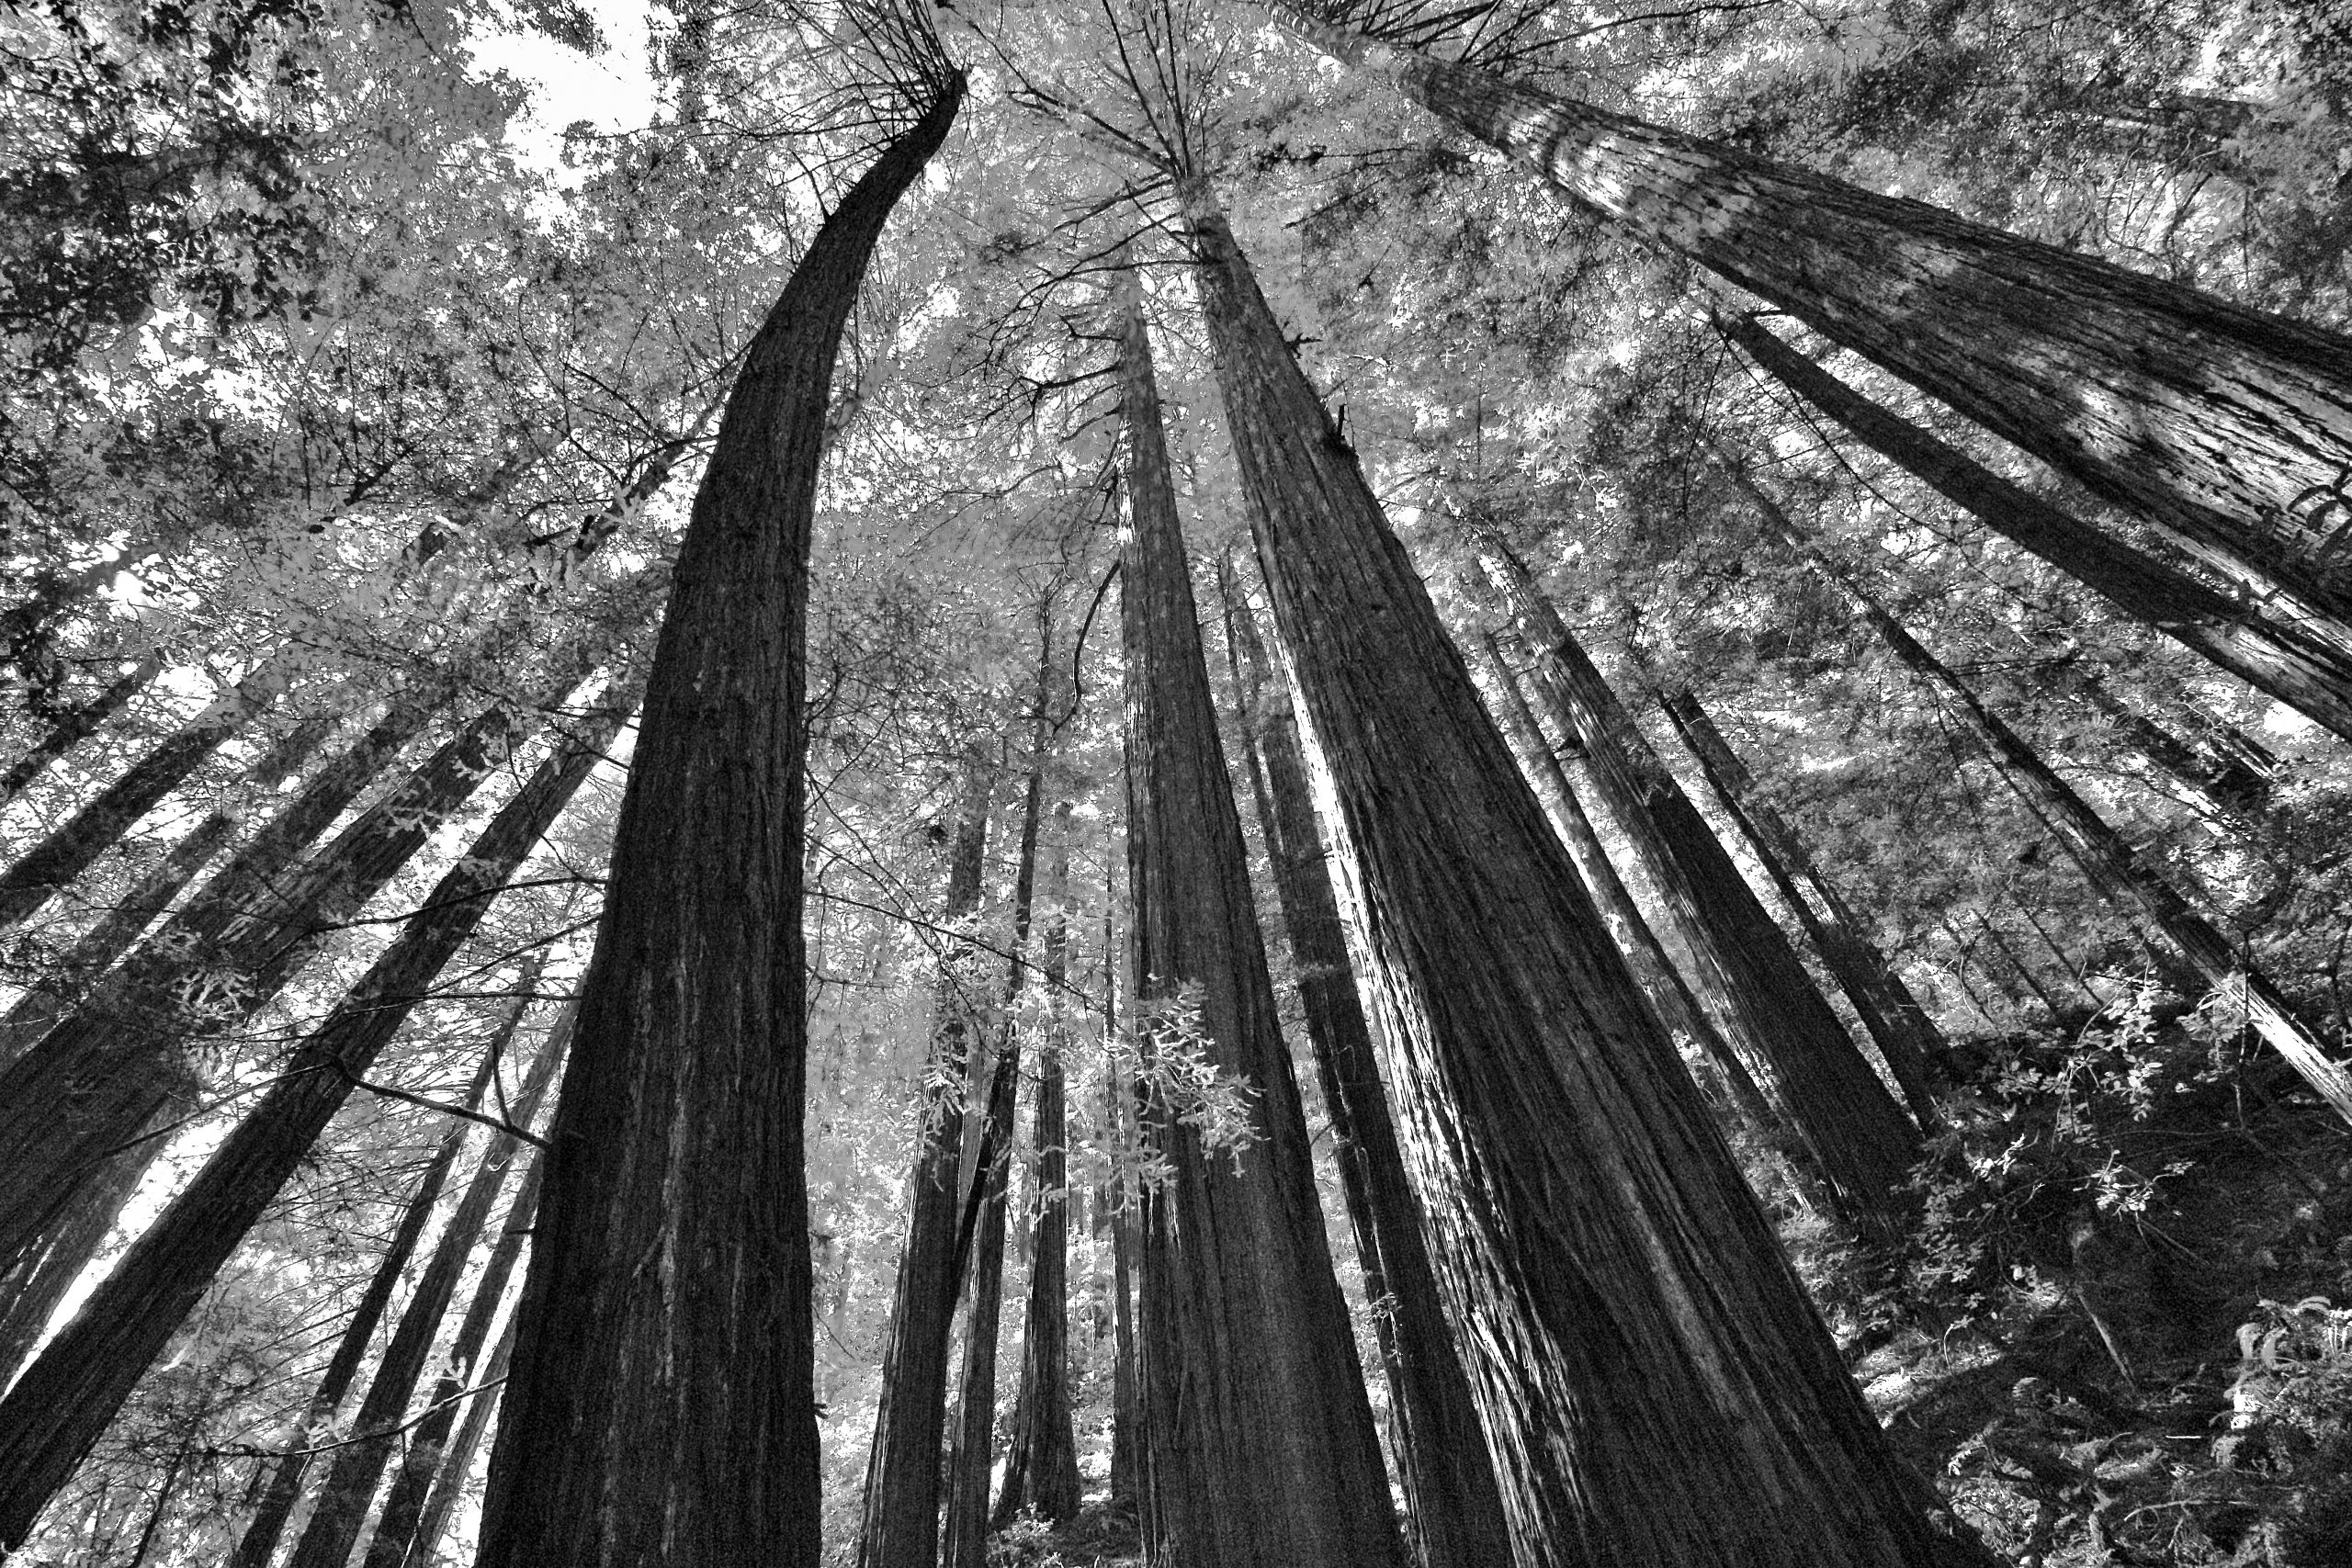 Redwood trees at the Muir Woods National Monument